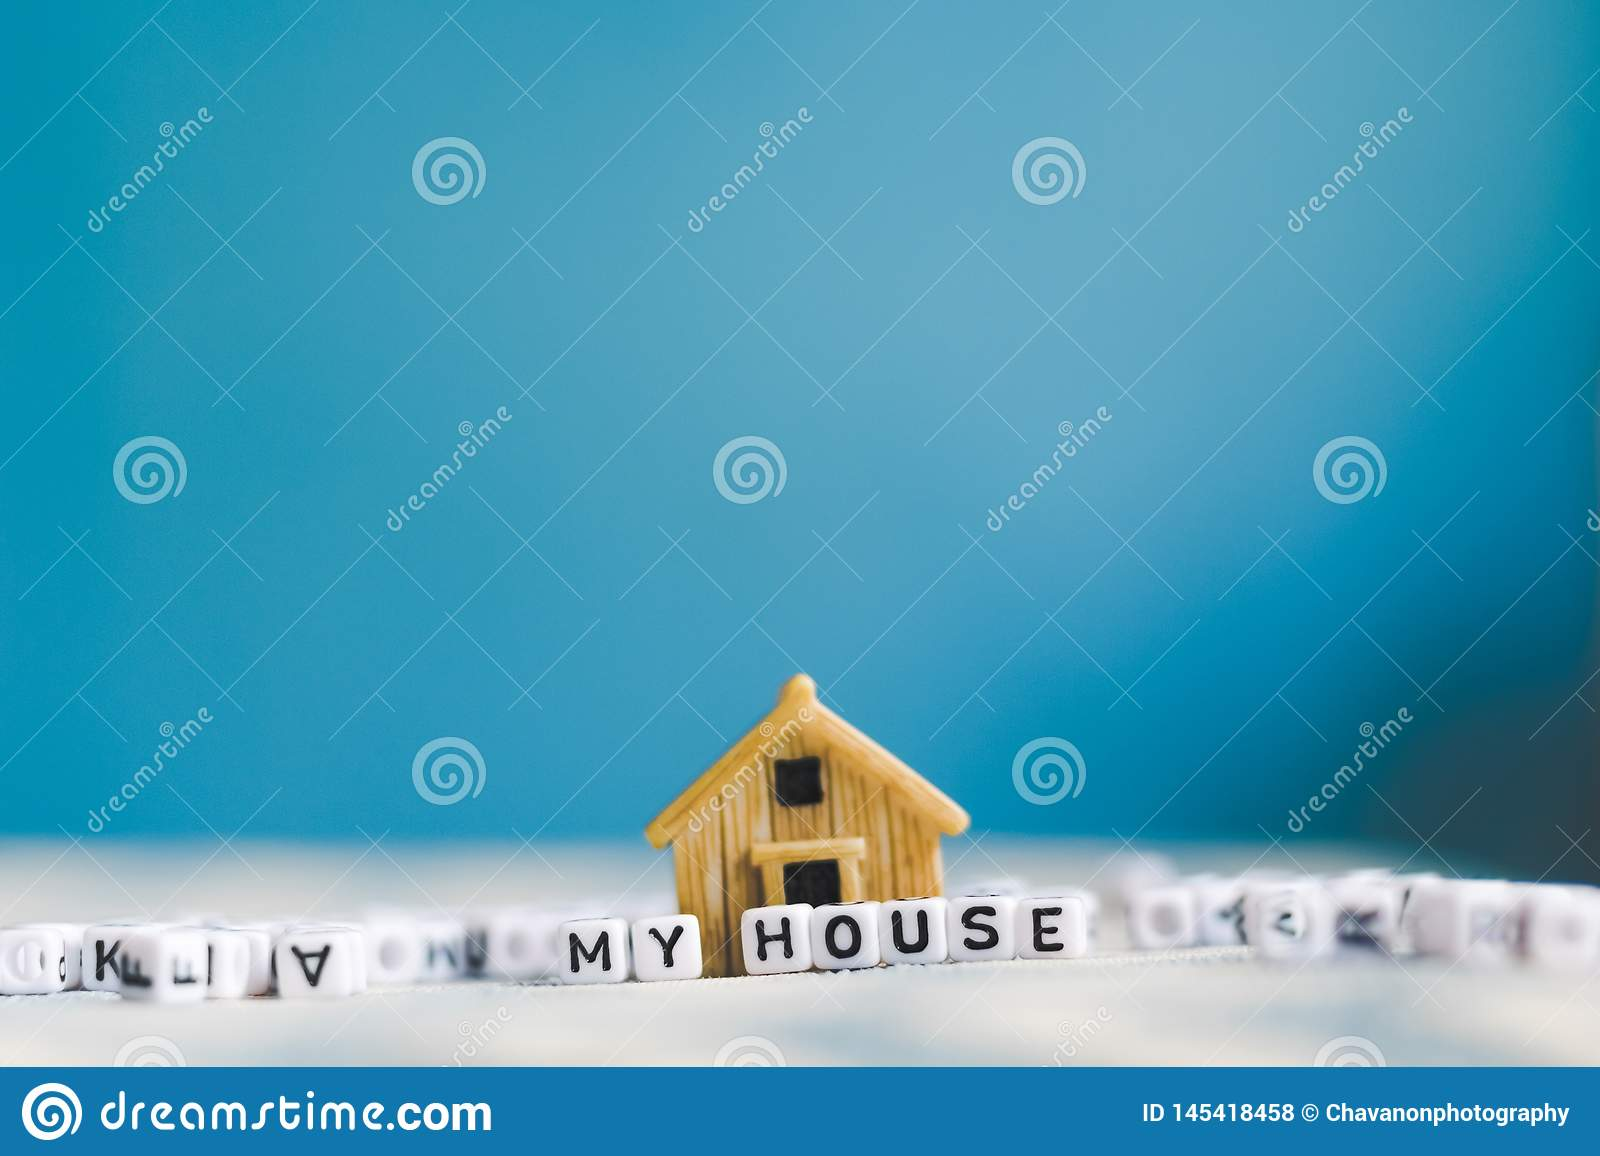 Miniature house model with  HOUSE  alphabet cube letter